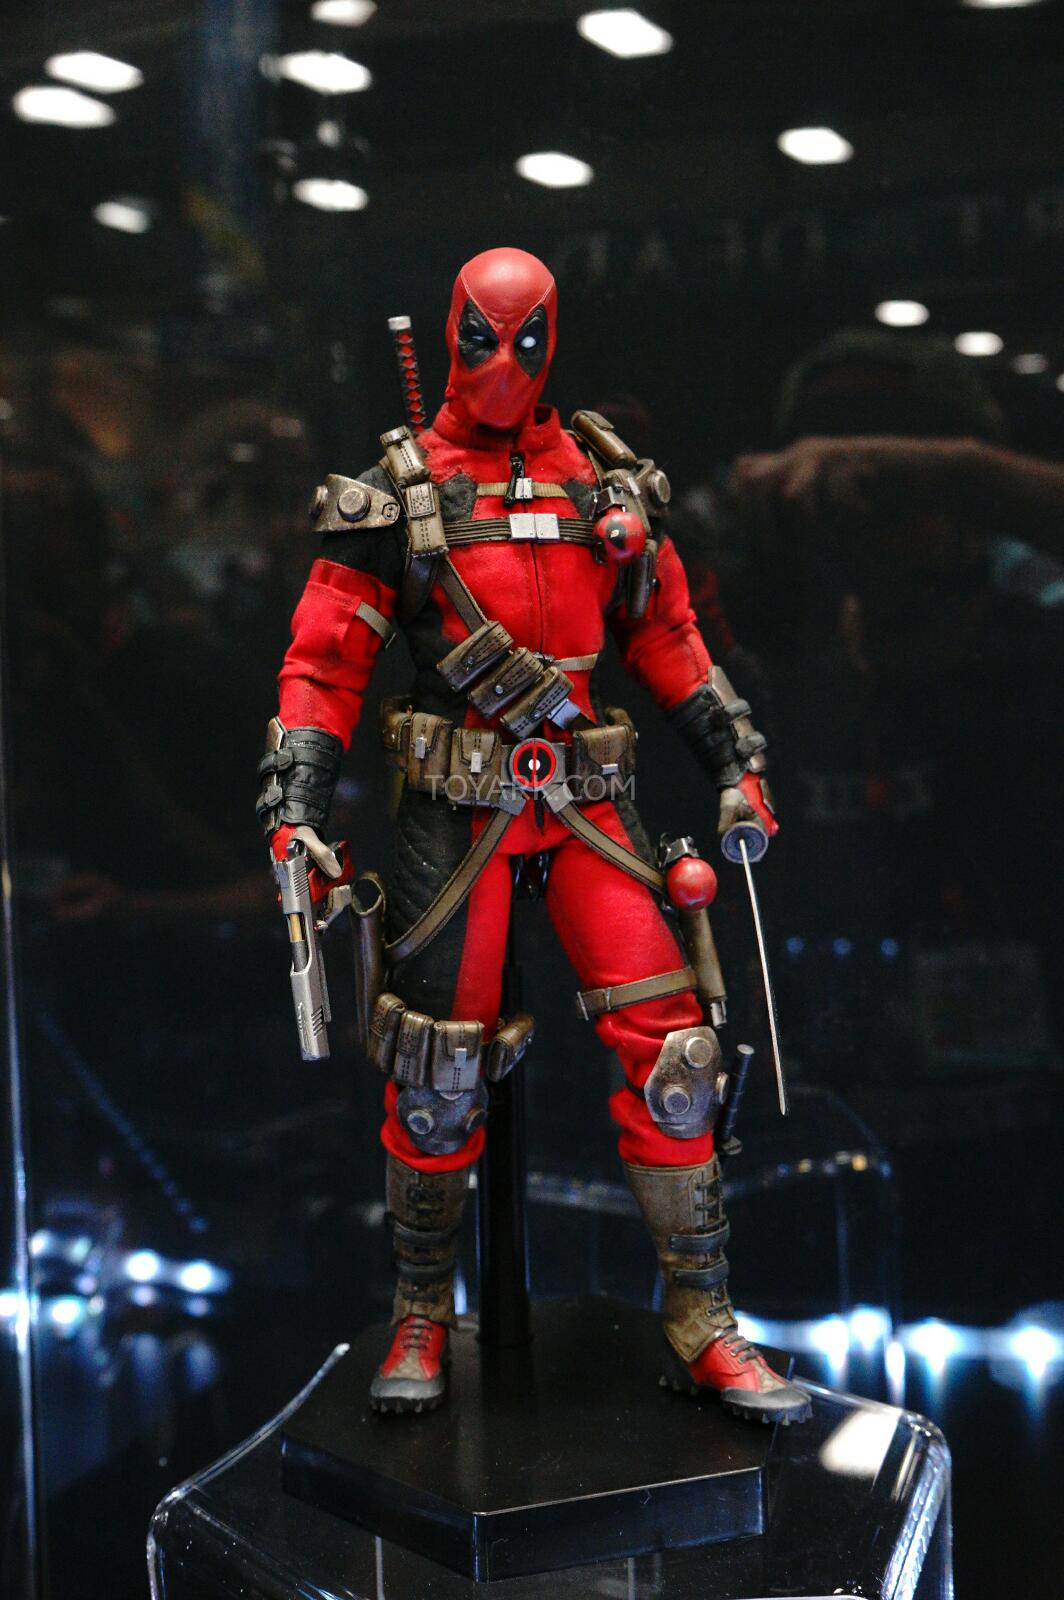 [Sideshow] Marvel Sixth Scale Collection - Deadpool DSC07542